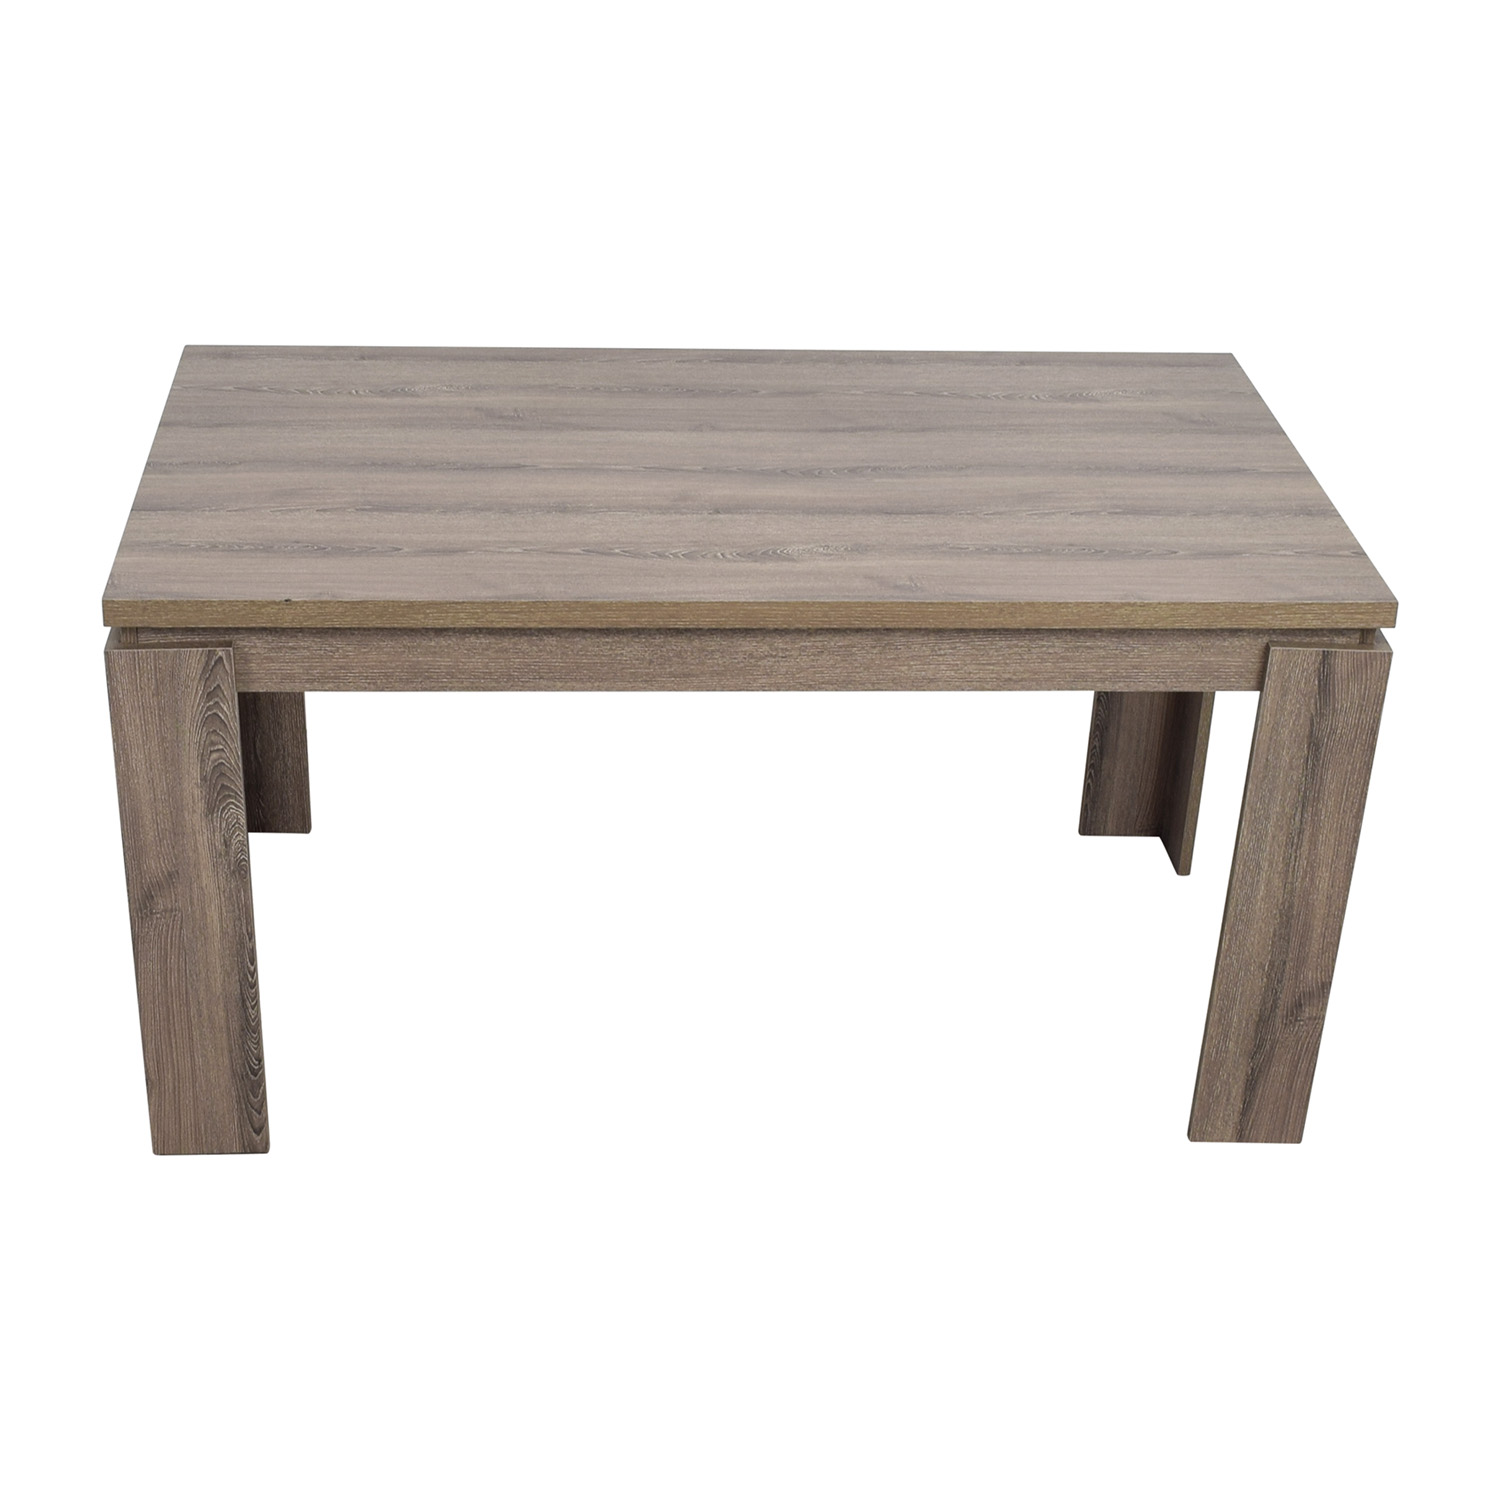 WilliamBrugman WilliamBrugman Rustic Grey Table on sale